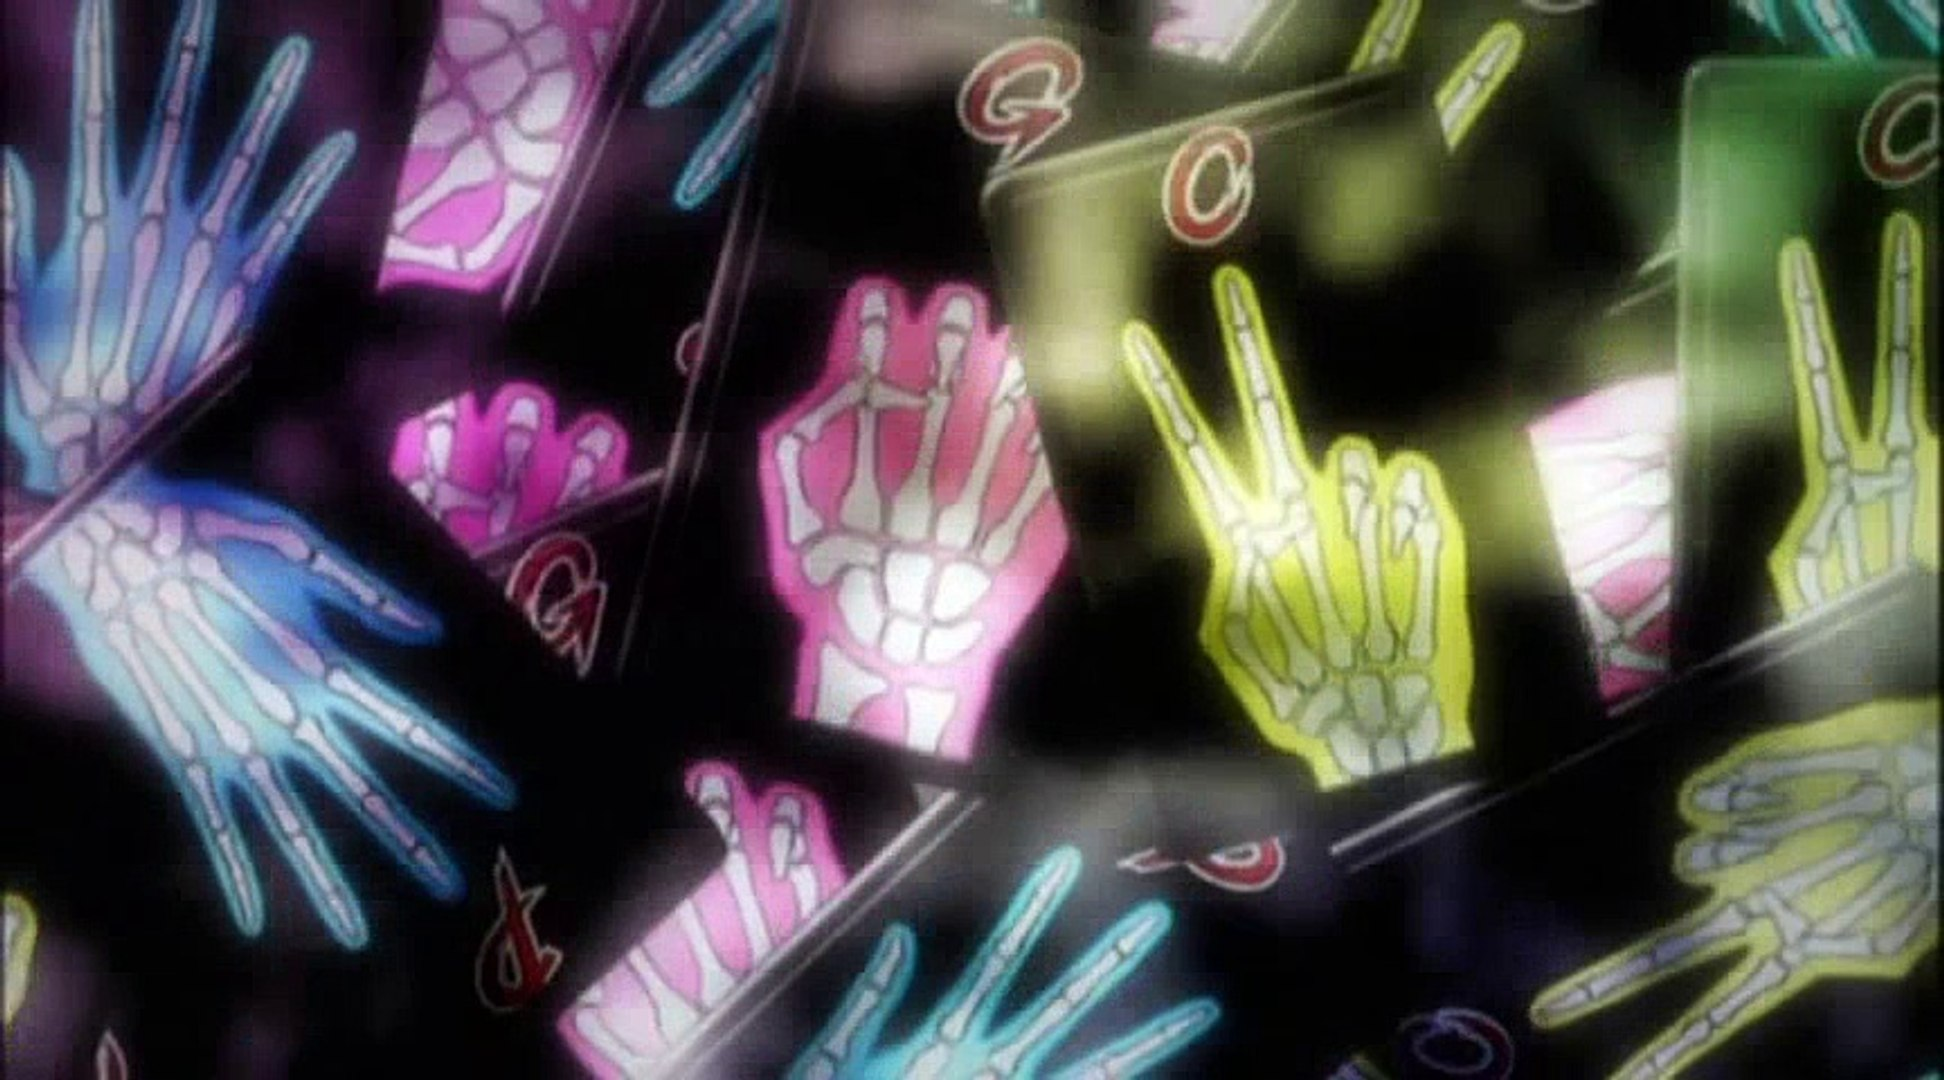 The Rock, Paper, Scissor cards that the characters use to gamble with.  The cards have skeletal hands printed on them in different positions to stand for the rock, paper, or scissors.